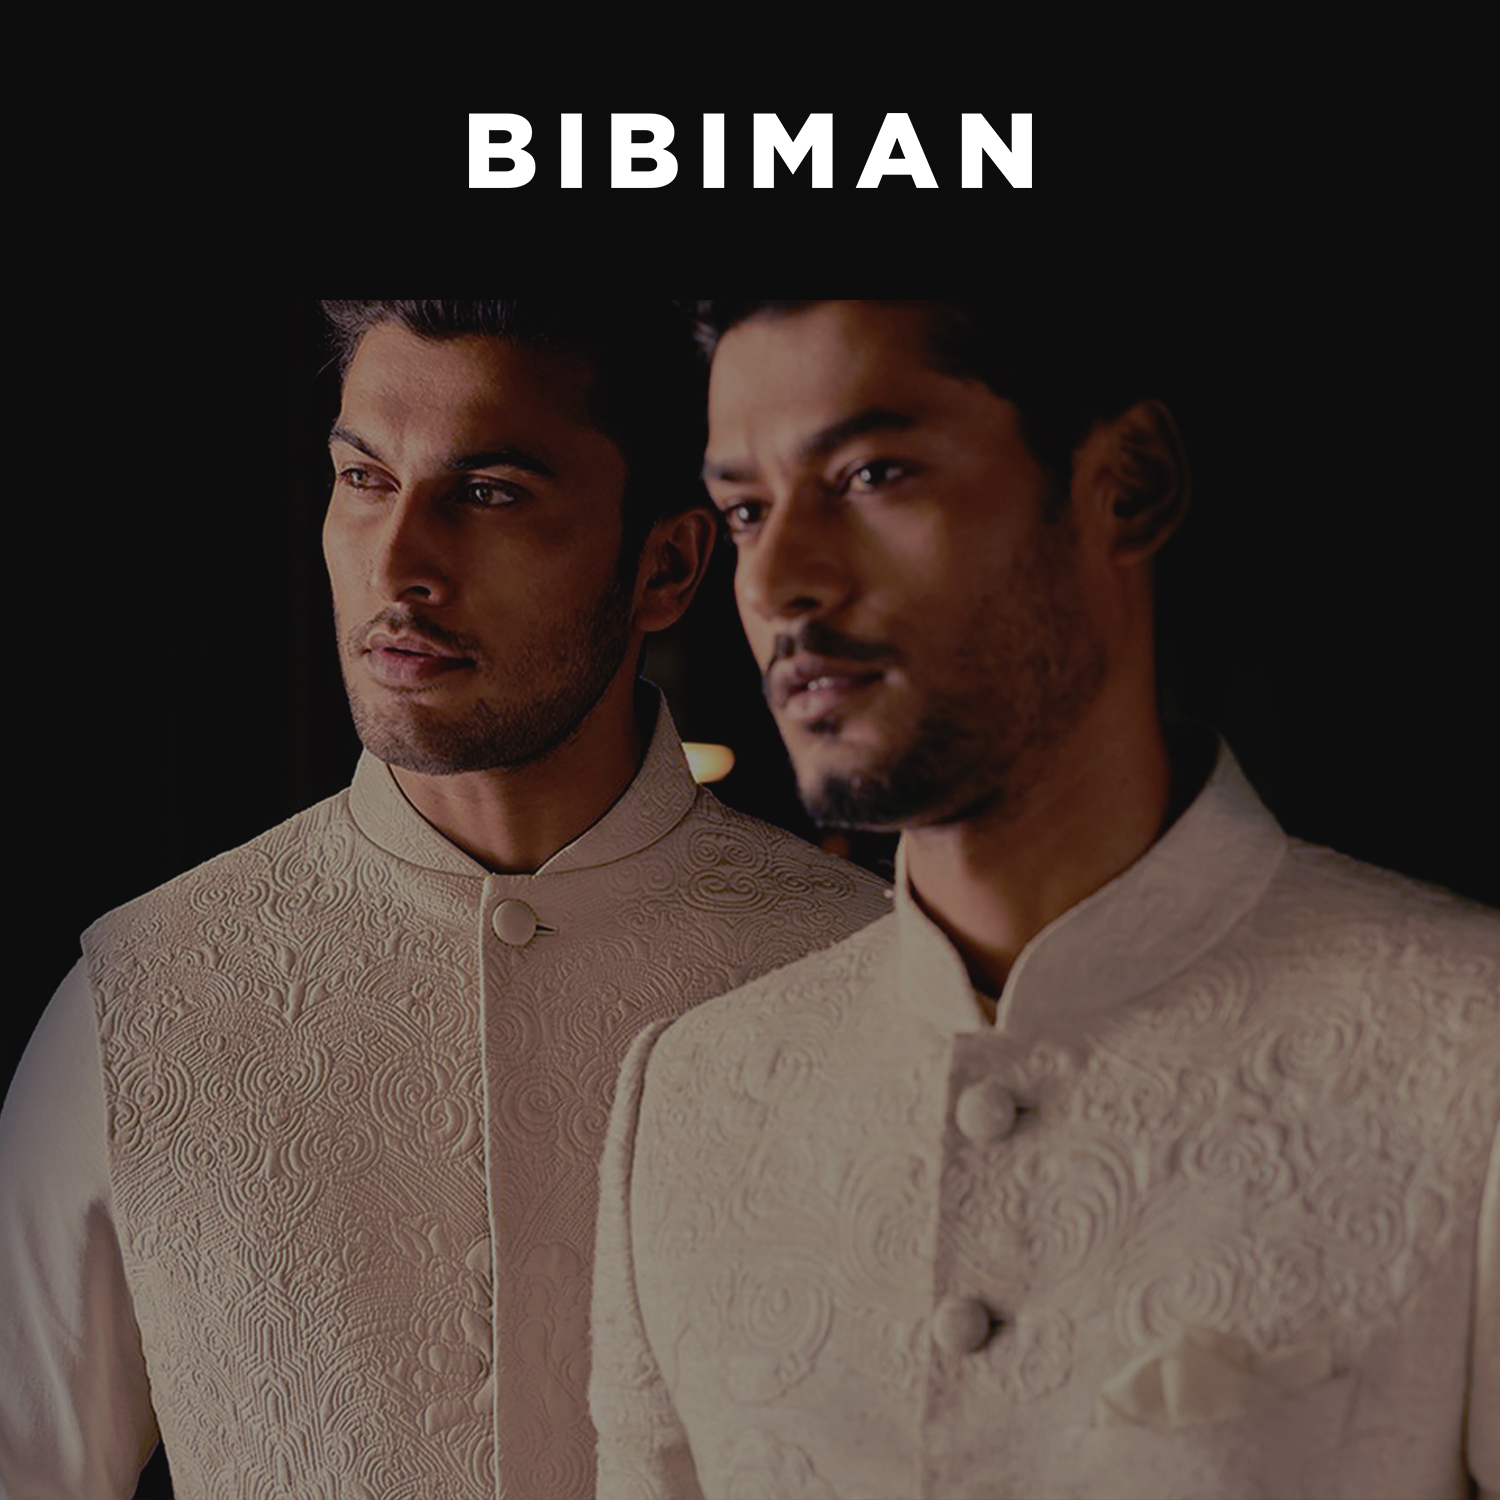 ASIAN COUTURE FOR MEN. LIKE IT SHOULD BE - Discover Bespoke Pieces from India's Top Designers like Shantanu & Nikhil and Tarun Tahiliani, as well a Range of Ready-To-Wear Suits & Jackets